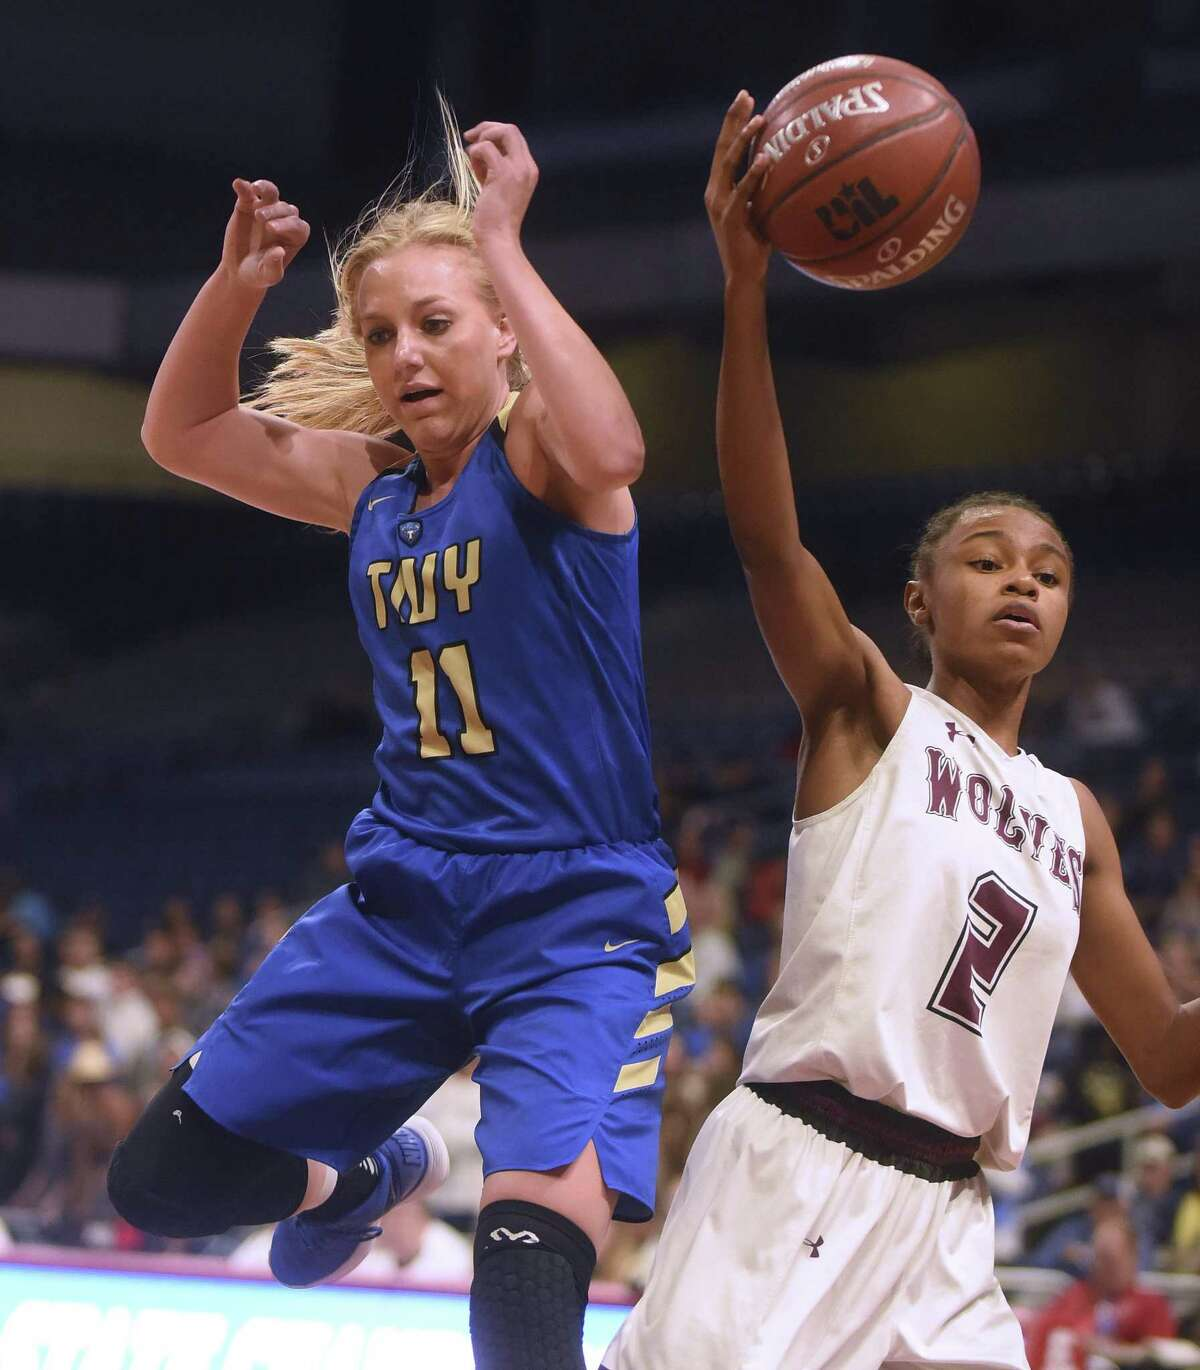 Charli Becker of Kerrville Tivy (11) and Destiny Jackson of Mansfield Timberview fight for a loose ball during UIL Class 5A girls state semifinal high school action in the Alamodome on March 1, 2018.